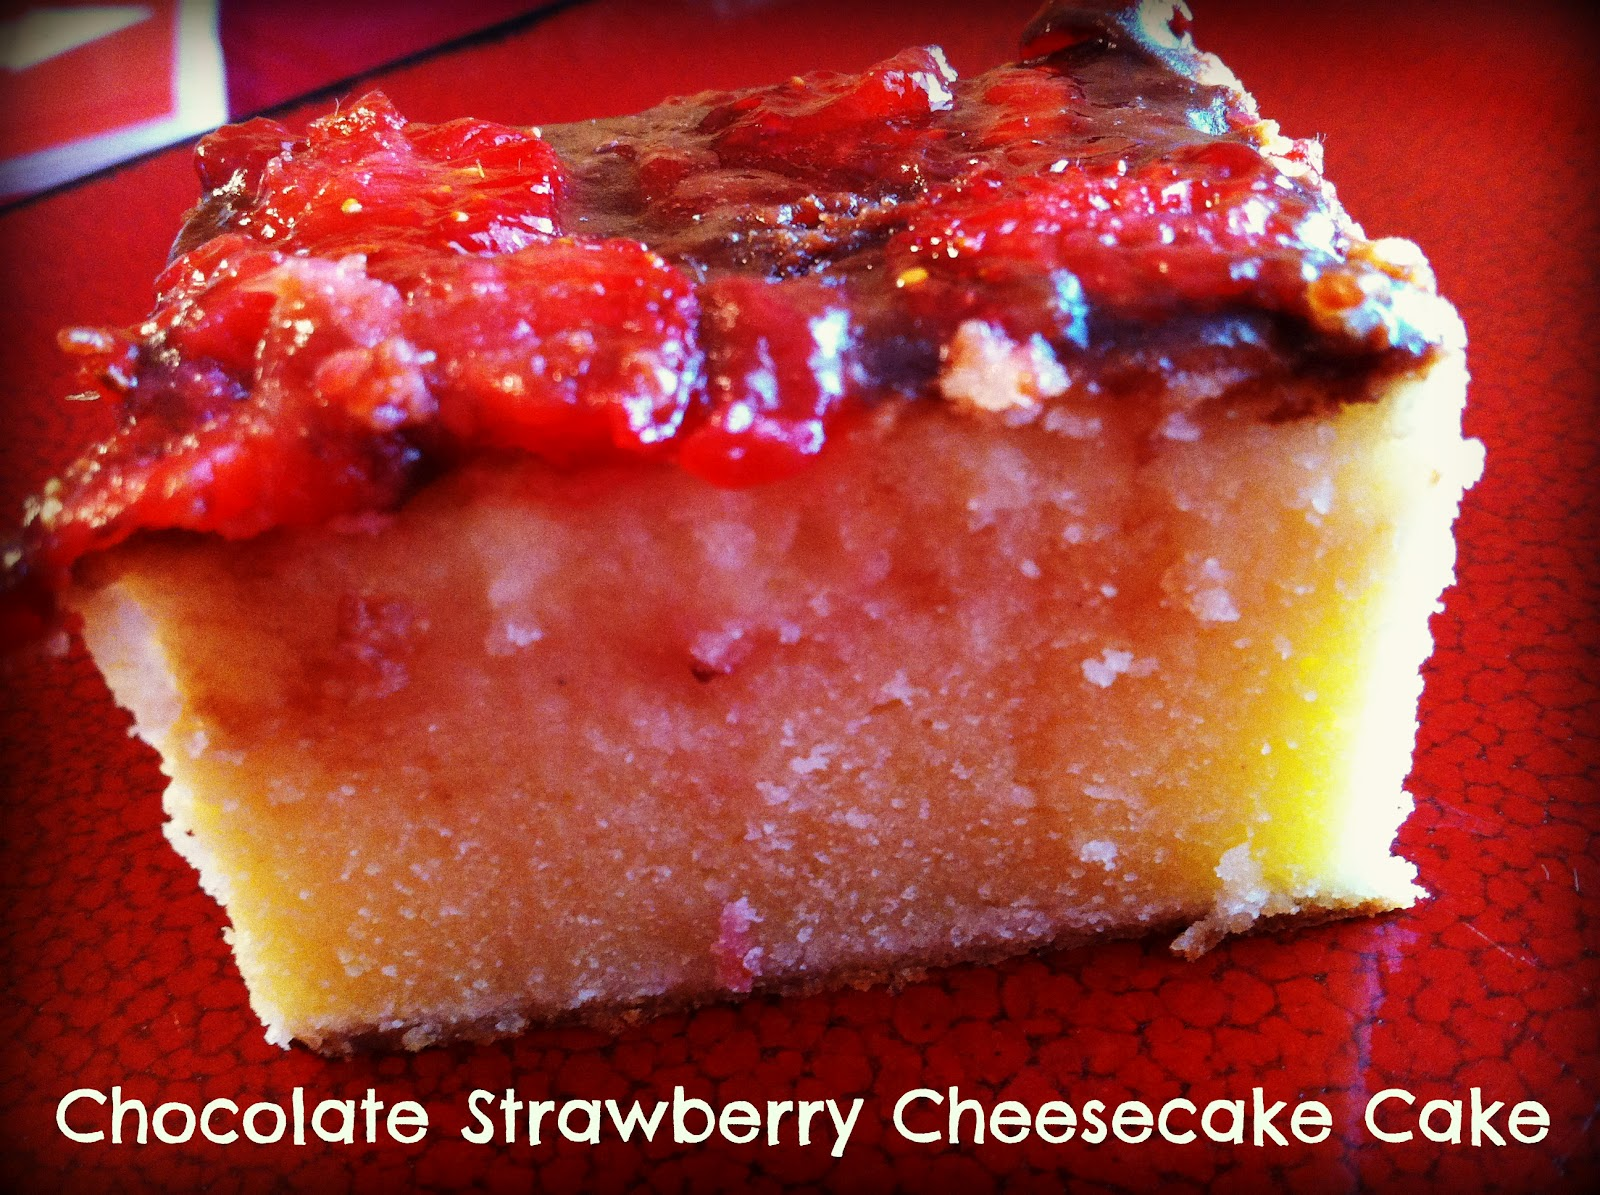 The Life Of Faith: Chocolate Strawberry Cheesecake Cake